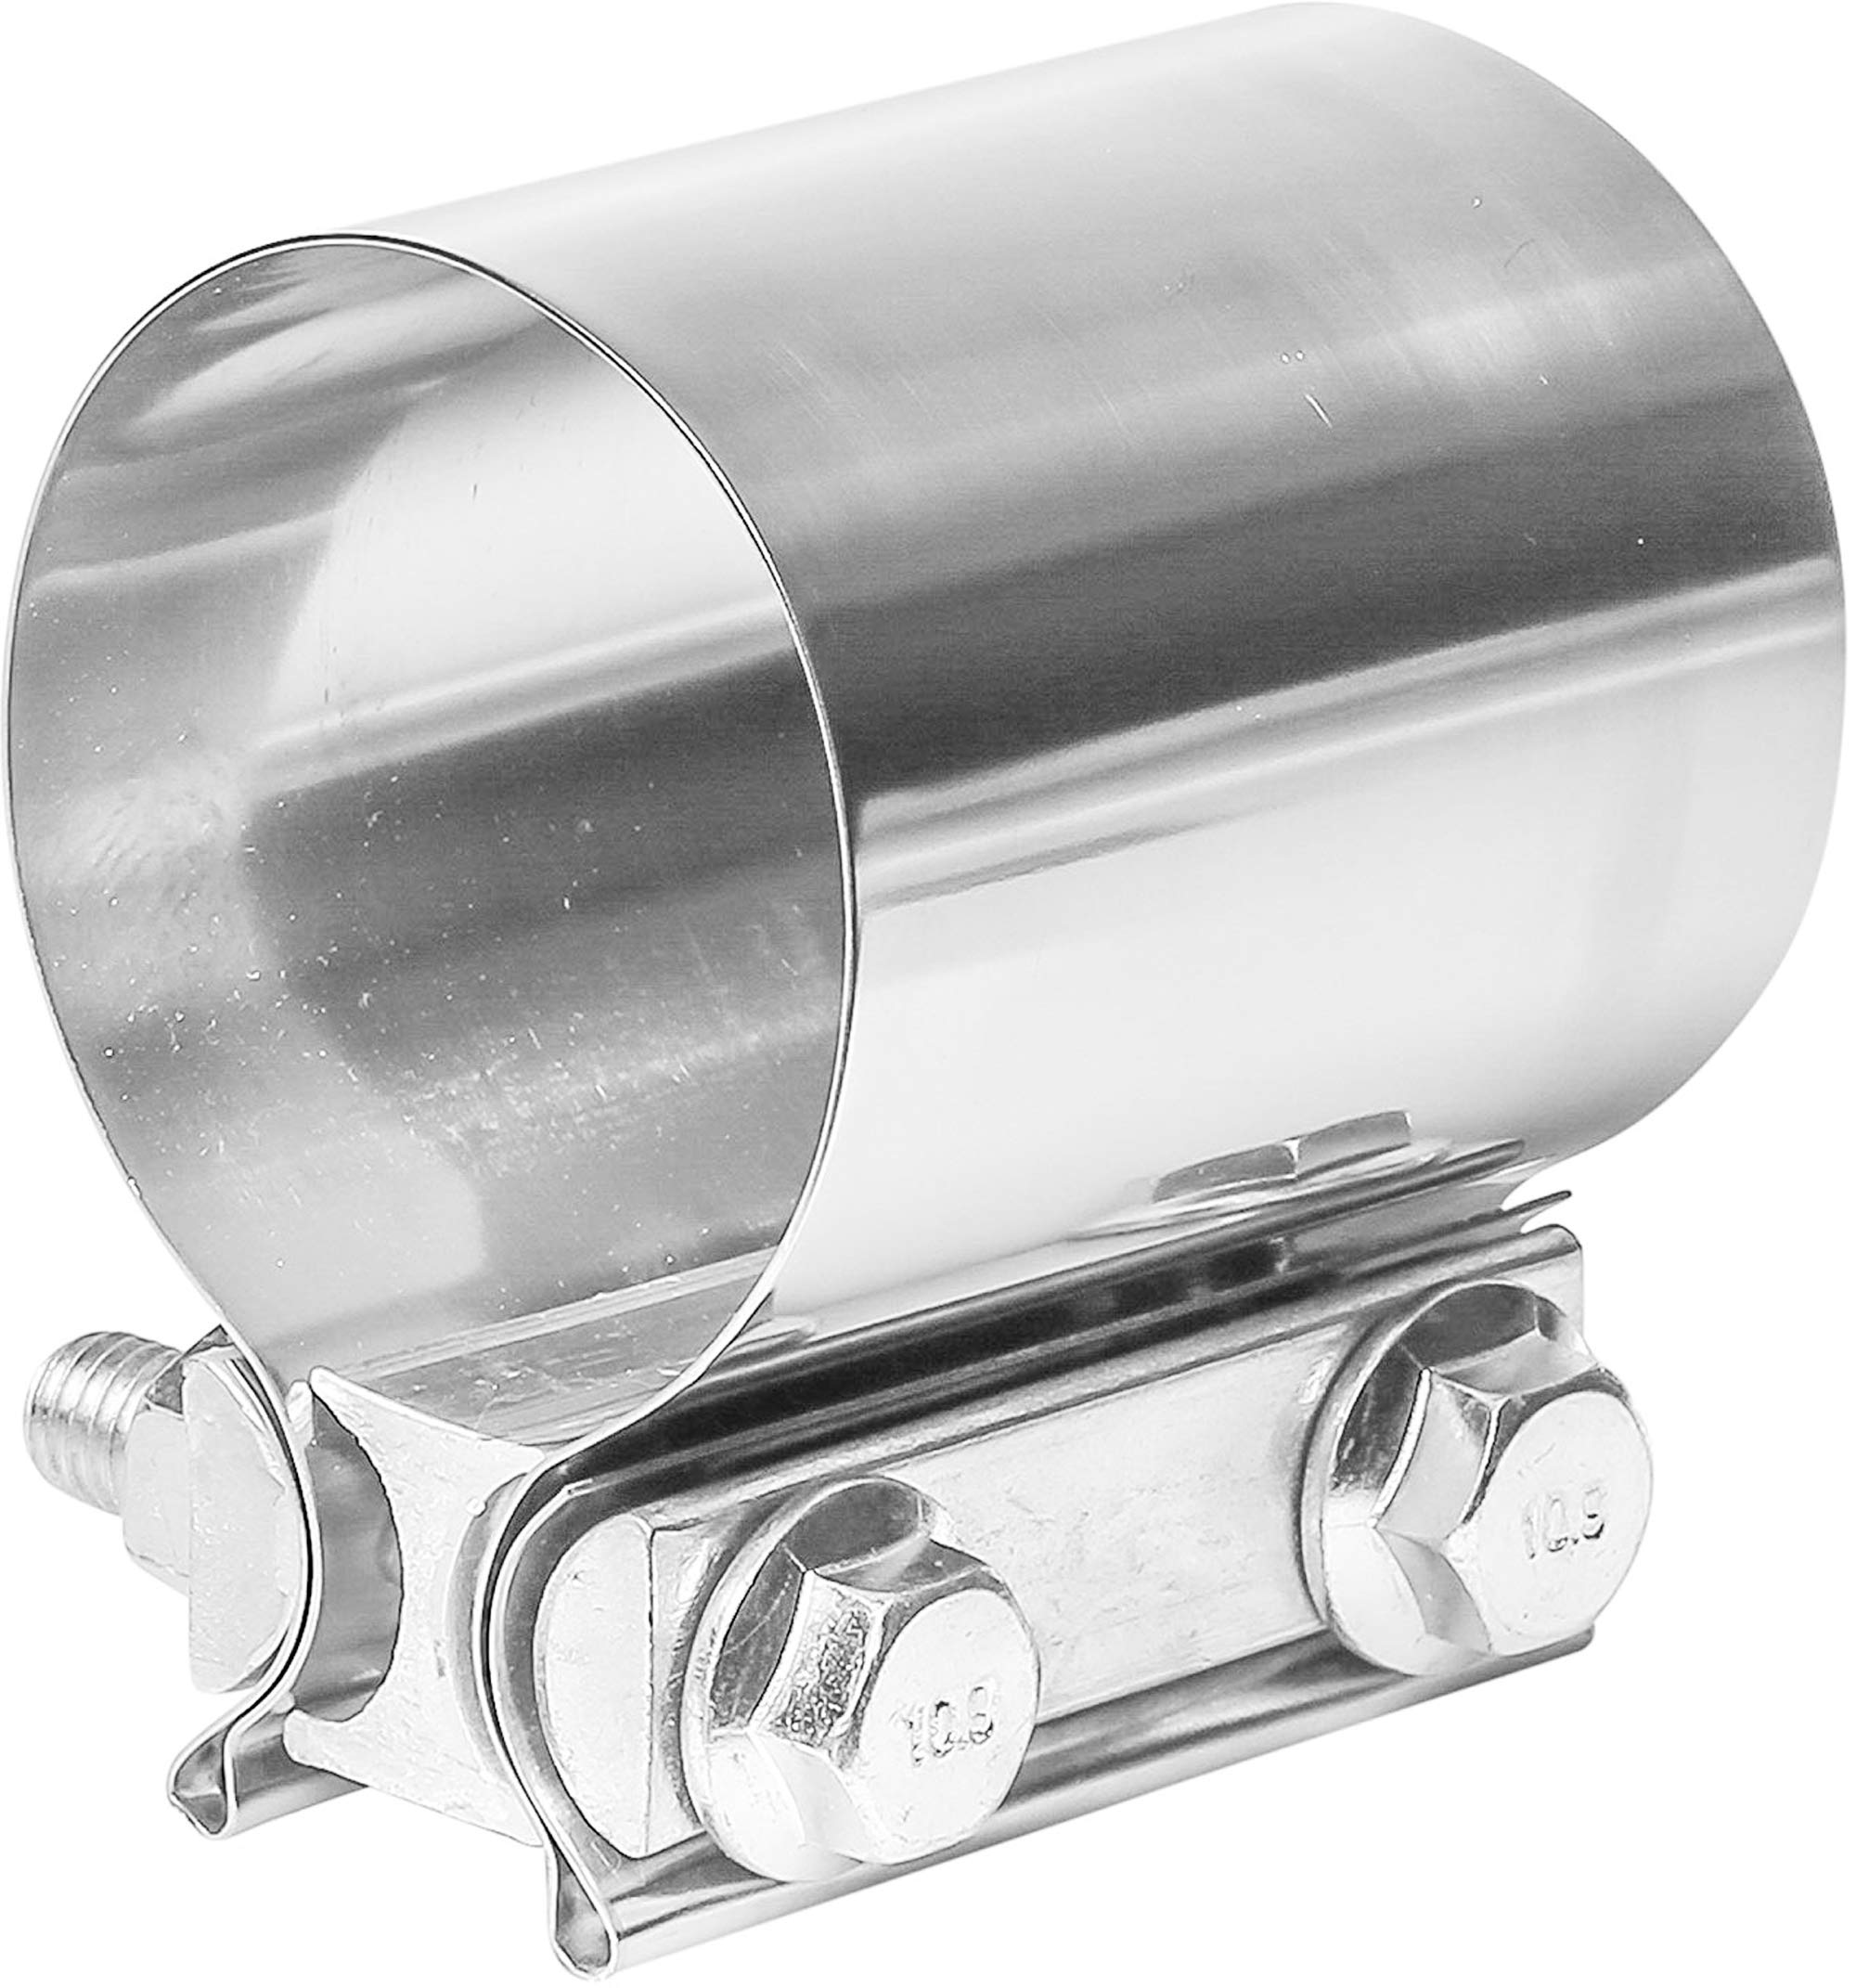 TOTALFLOW TF-JB61 Premium Quality 304 Stainless Steel Butt Joint Exhaust Muffler Clamp Band 3.5''